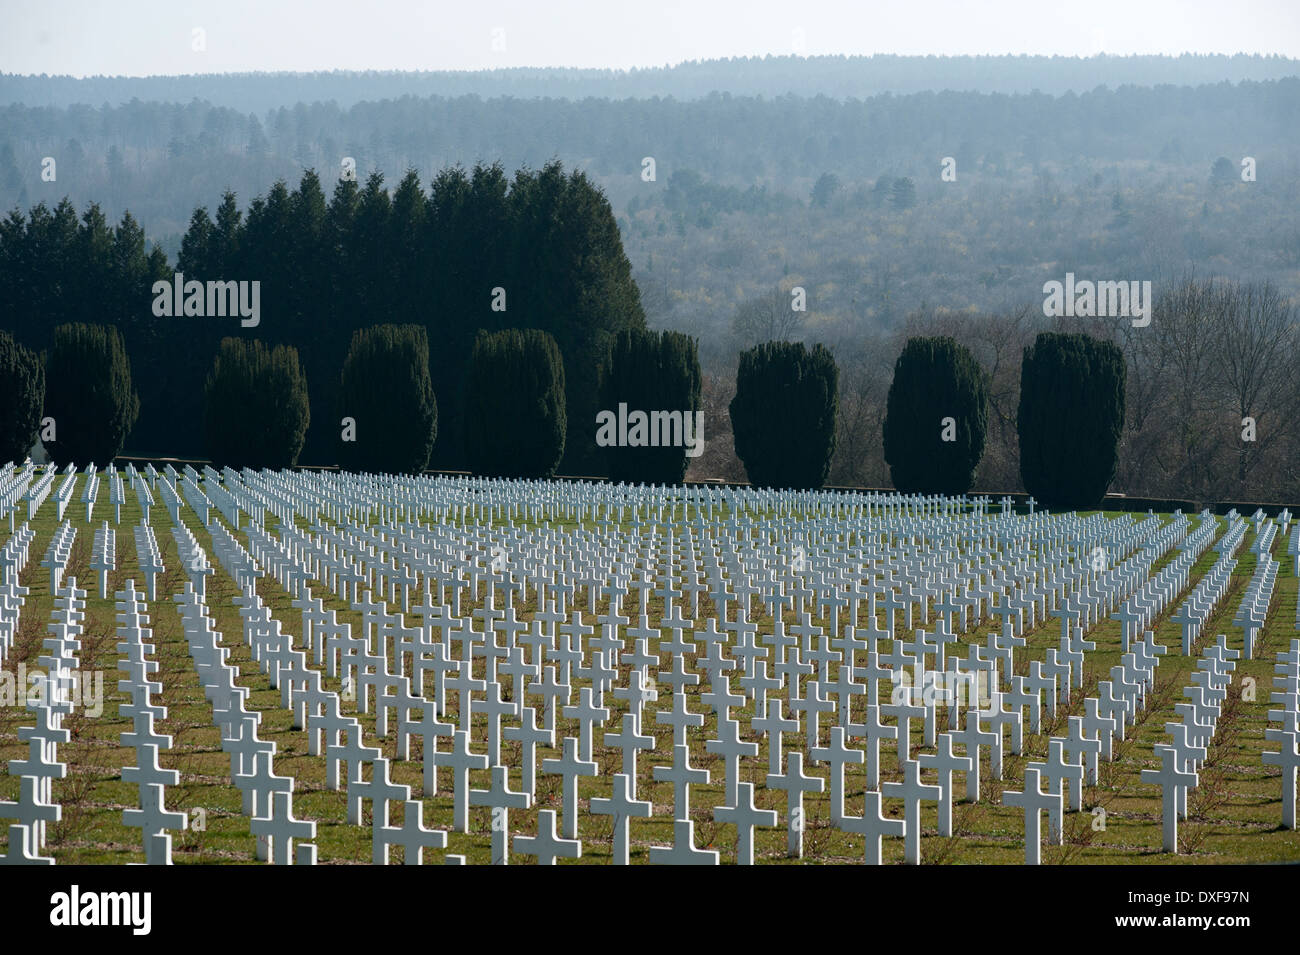 Verdun WW1 Battlefield site, Verdun-sur-Meuse, France. March 2014 Seen here : The French Cemetery and Great Ossuary at Douaumont - Stock Image